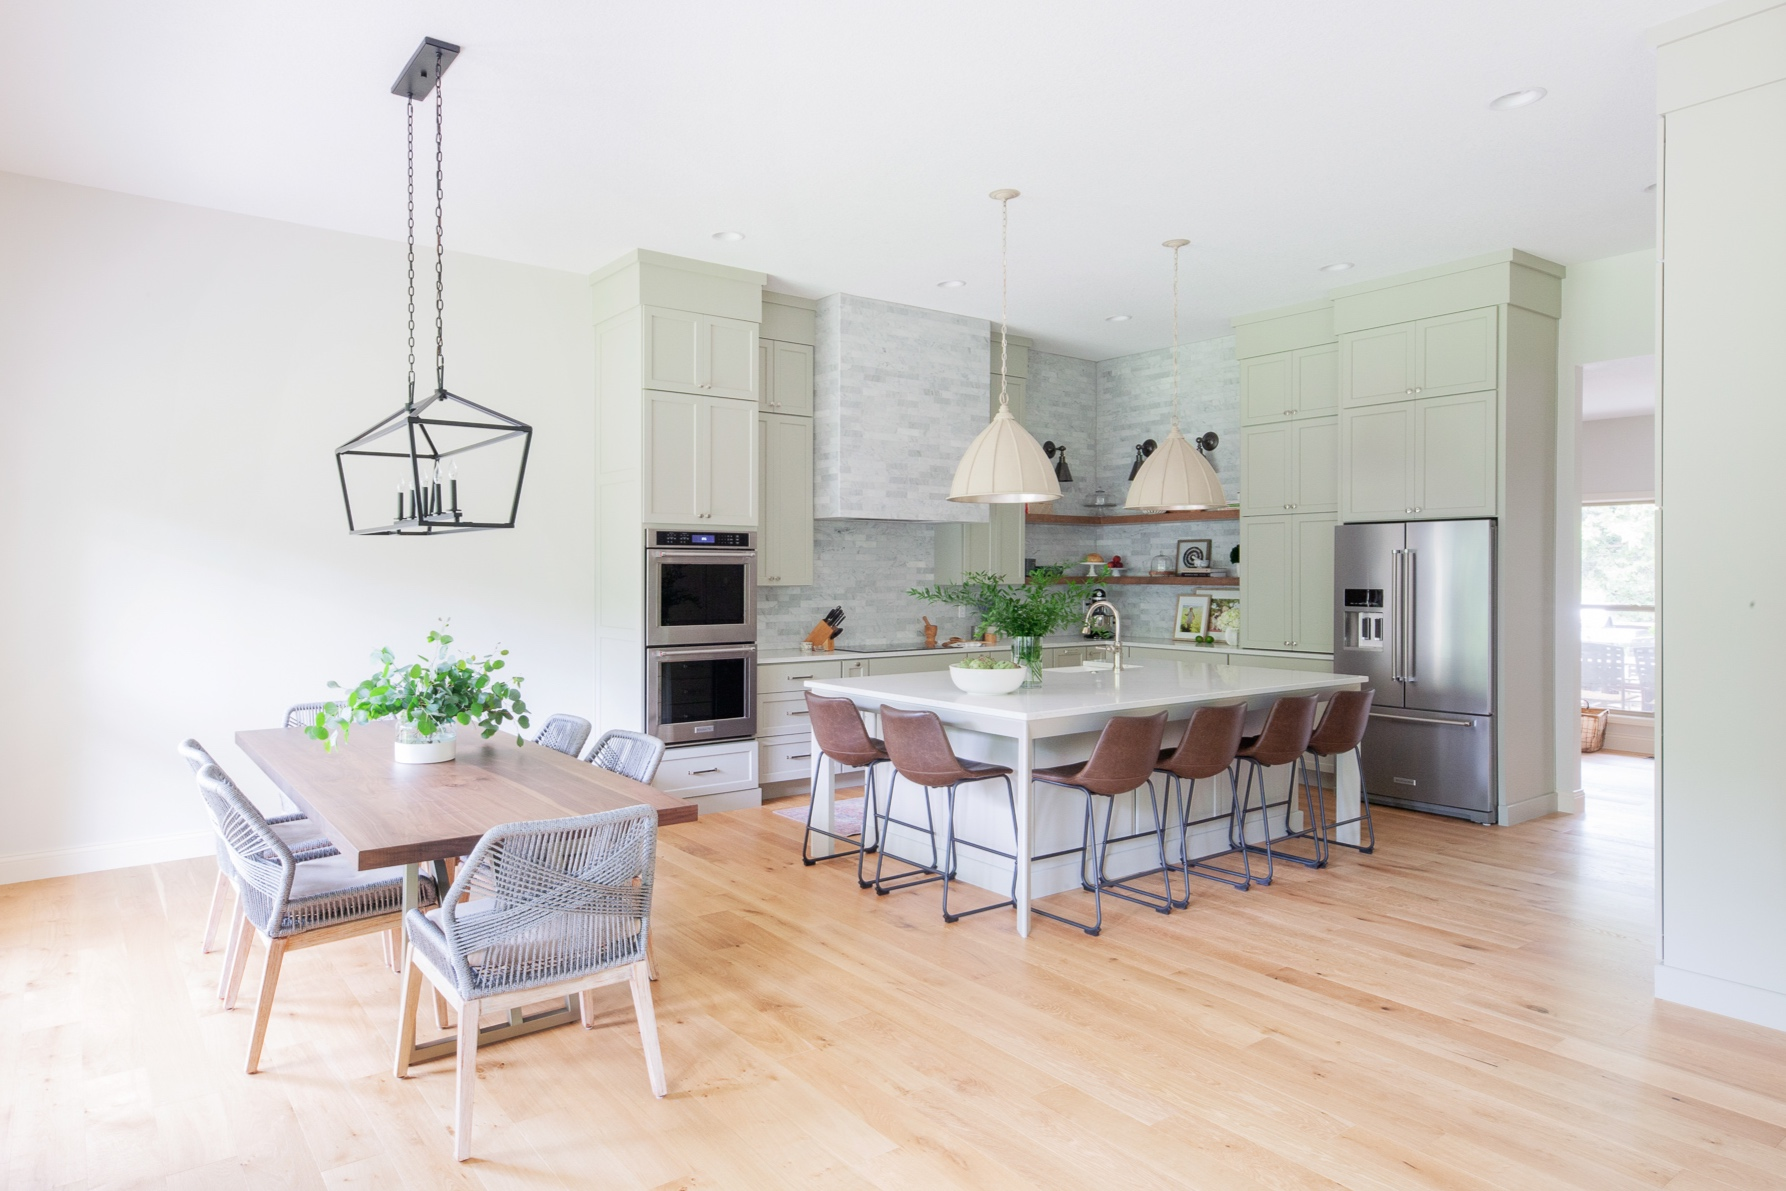 scout_and_nimble_hinkson_house_transitional_kitchen.jpg